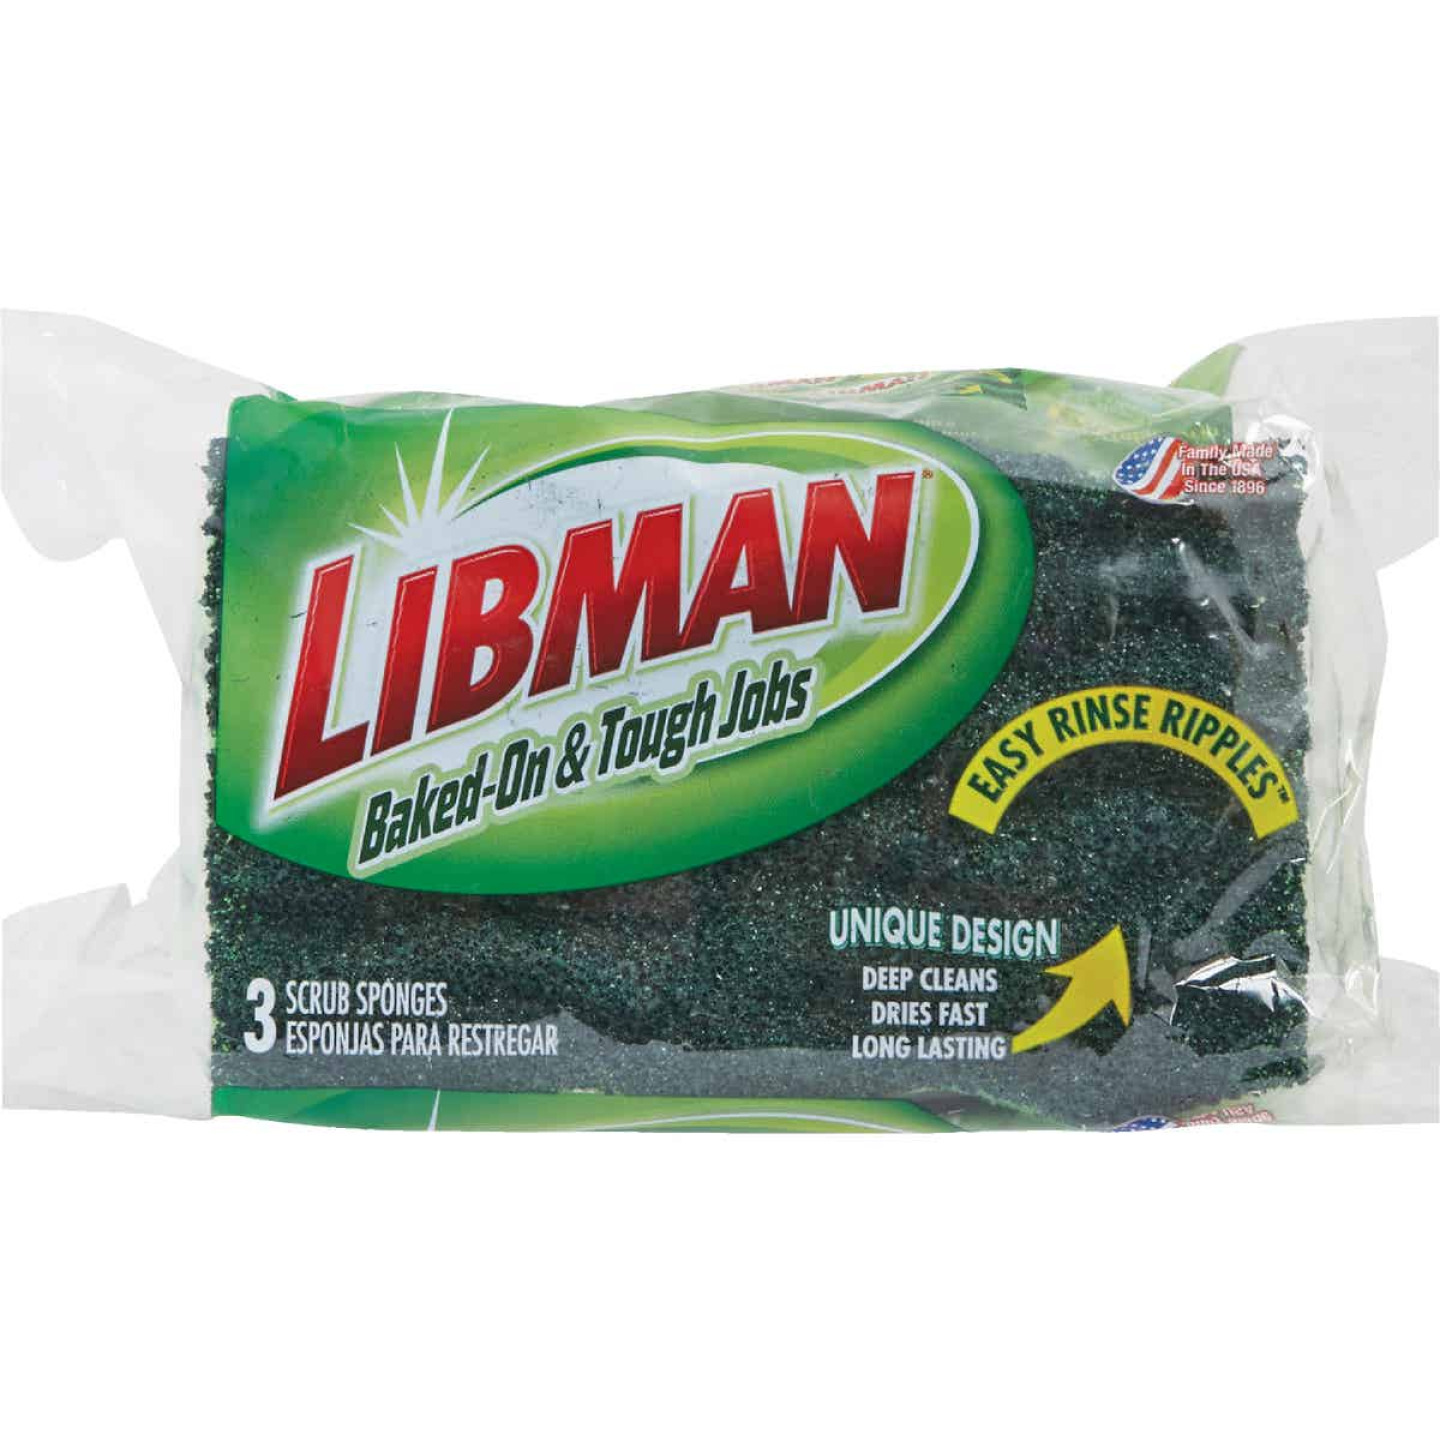 Libman 4.5 In. x 3 In. Yellow & Green Heavy Duty Scrub Heavy Duty Sponge (3-Count) Image 2